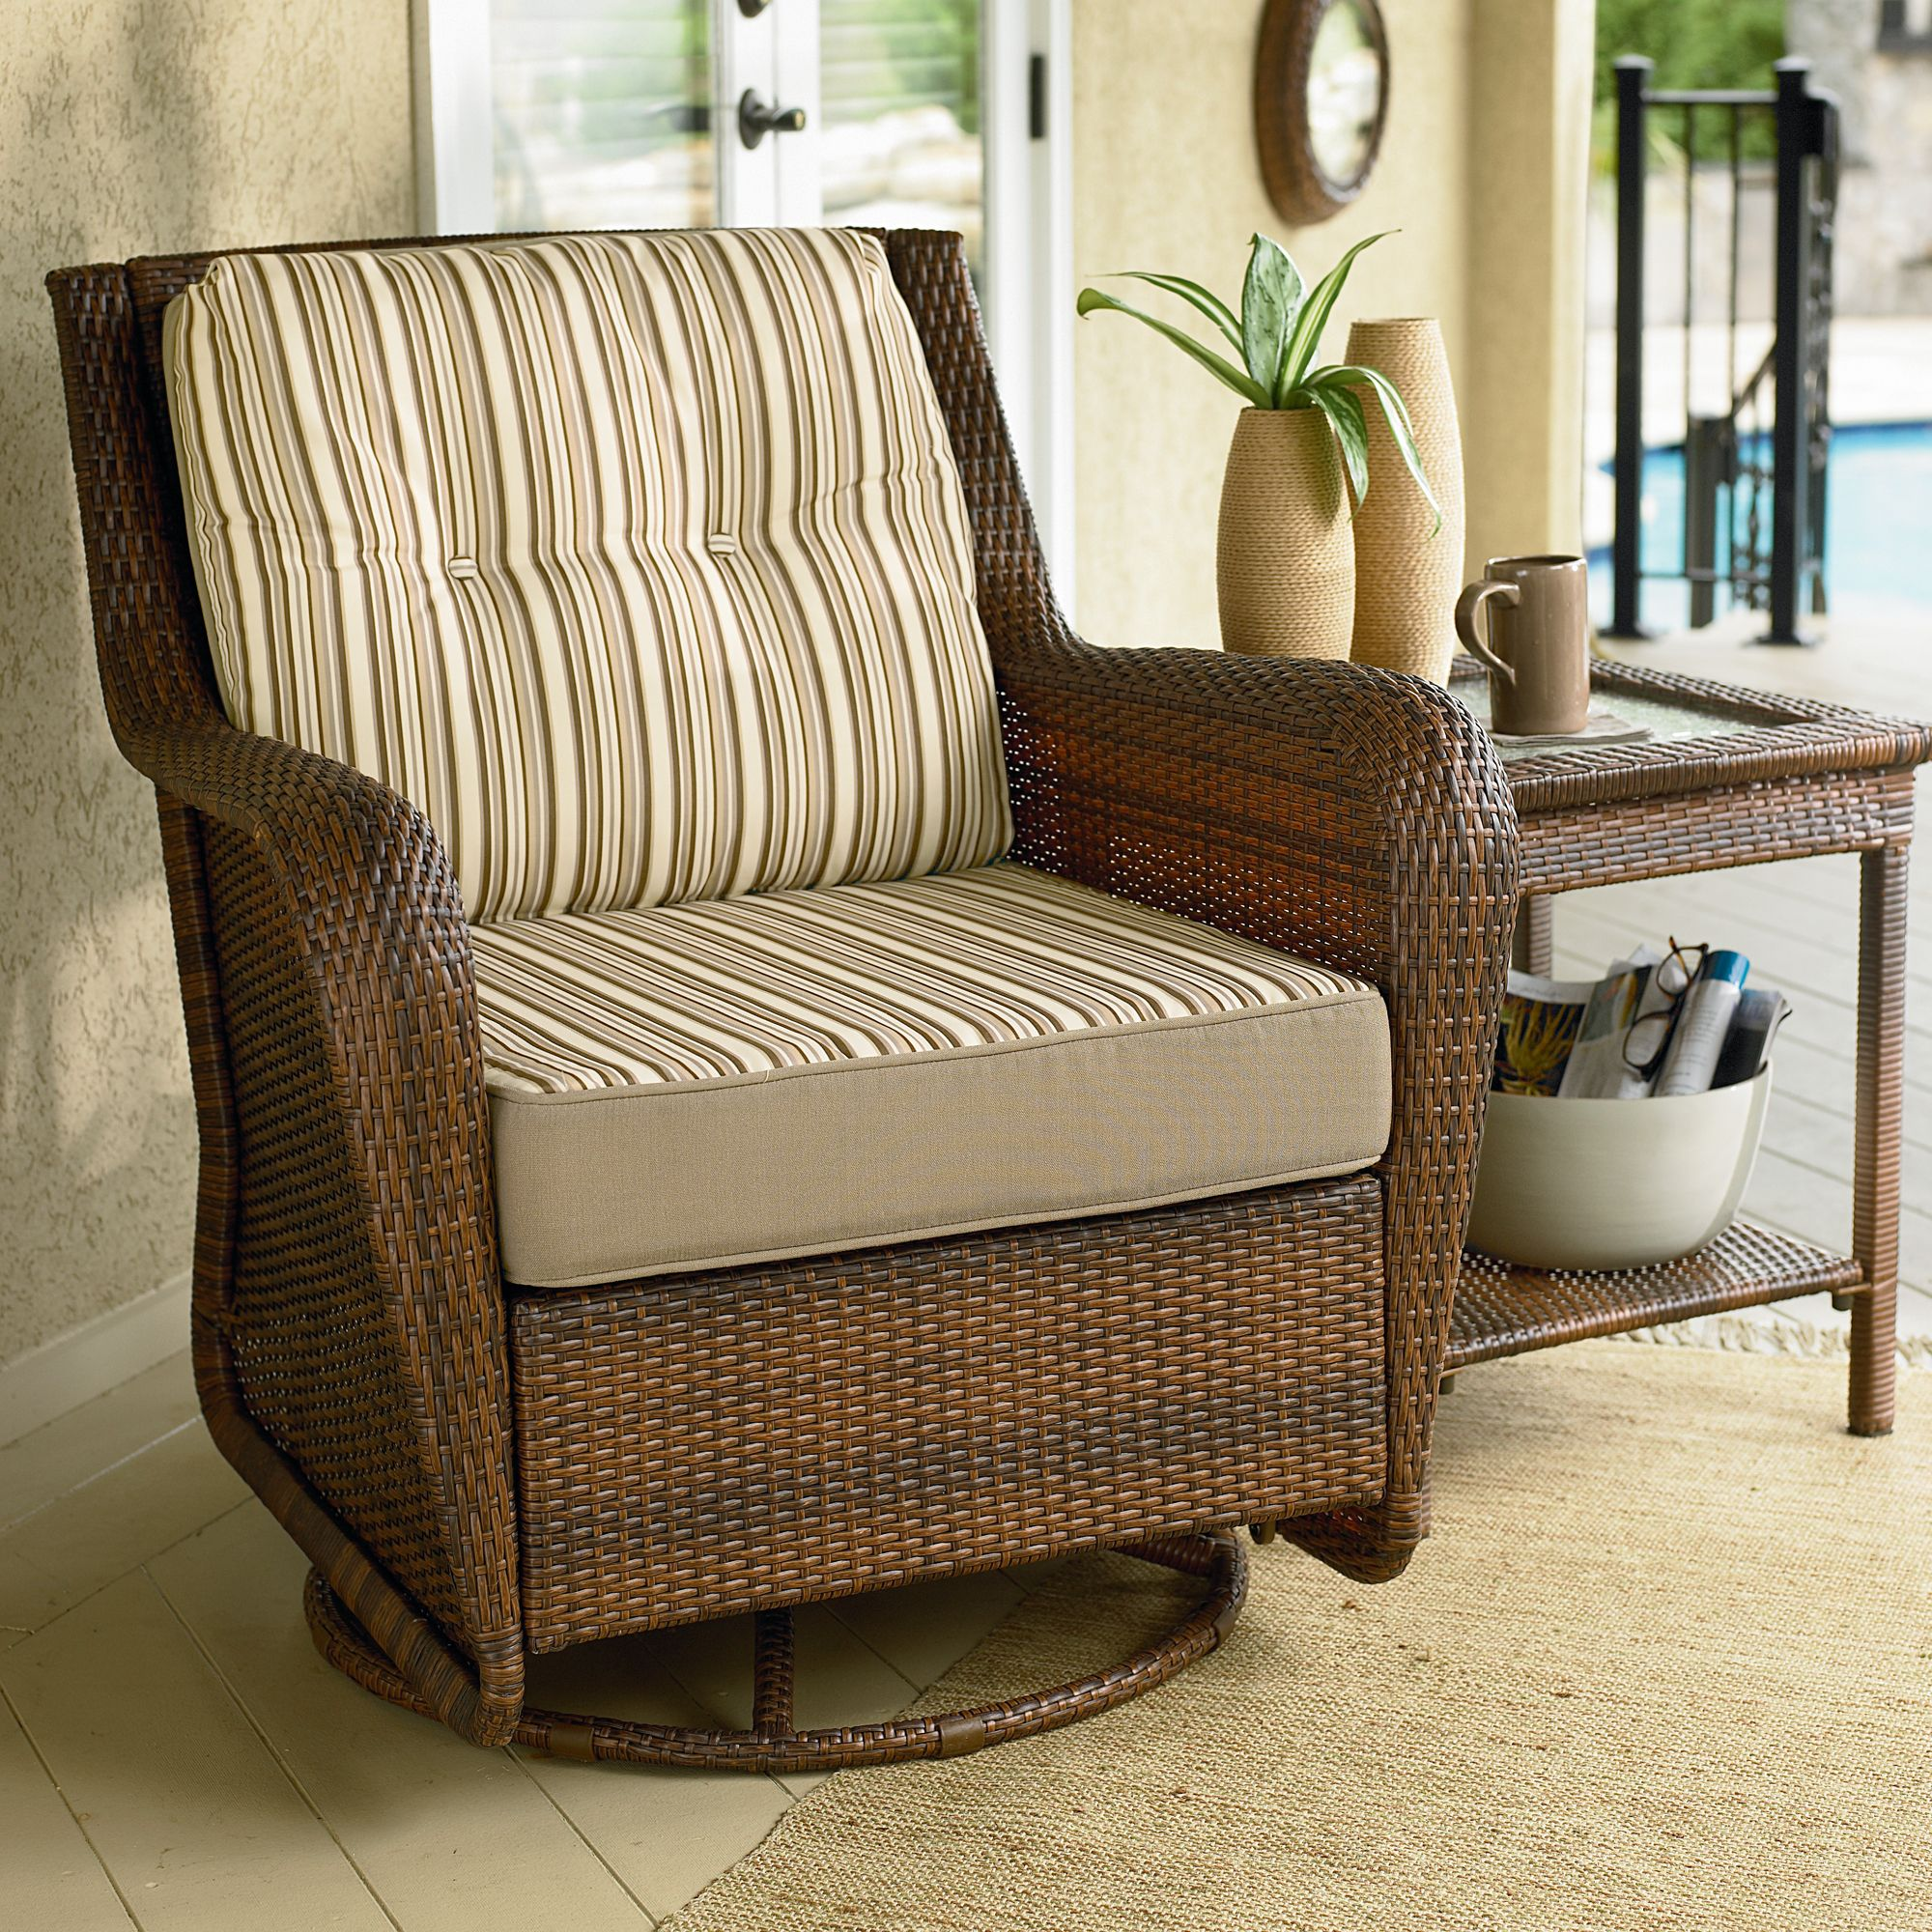 Luxury Swivel Glider Chair: Relax In Style With Classy Ideas From Sears  Swivel Glider Patio